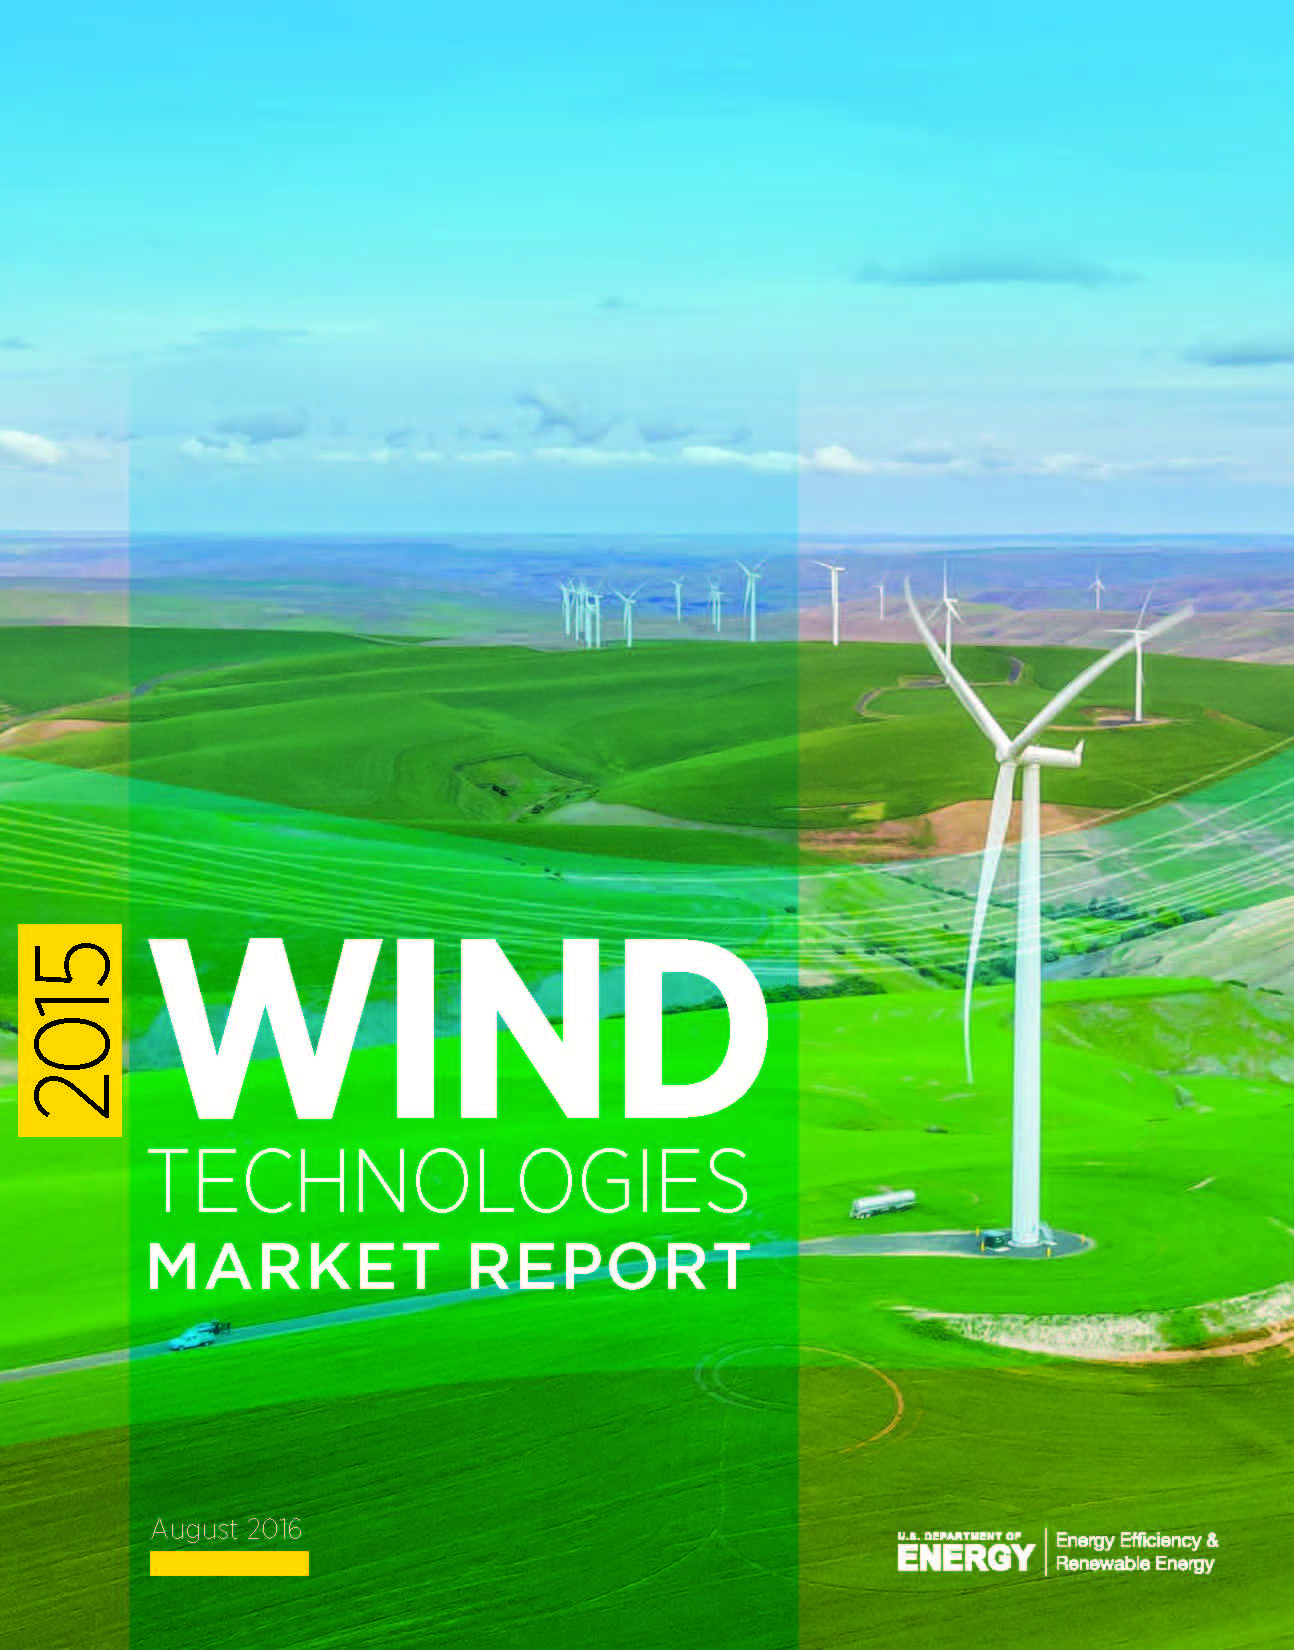 The cover to the 2015 Wind Technologies Market Report.